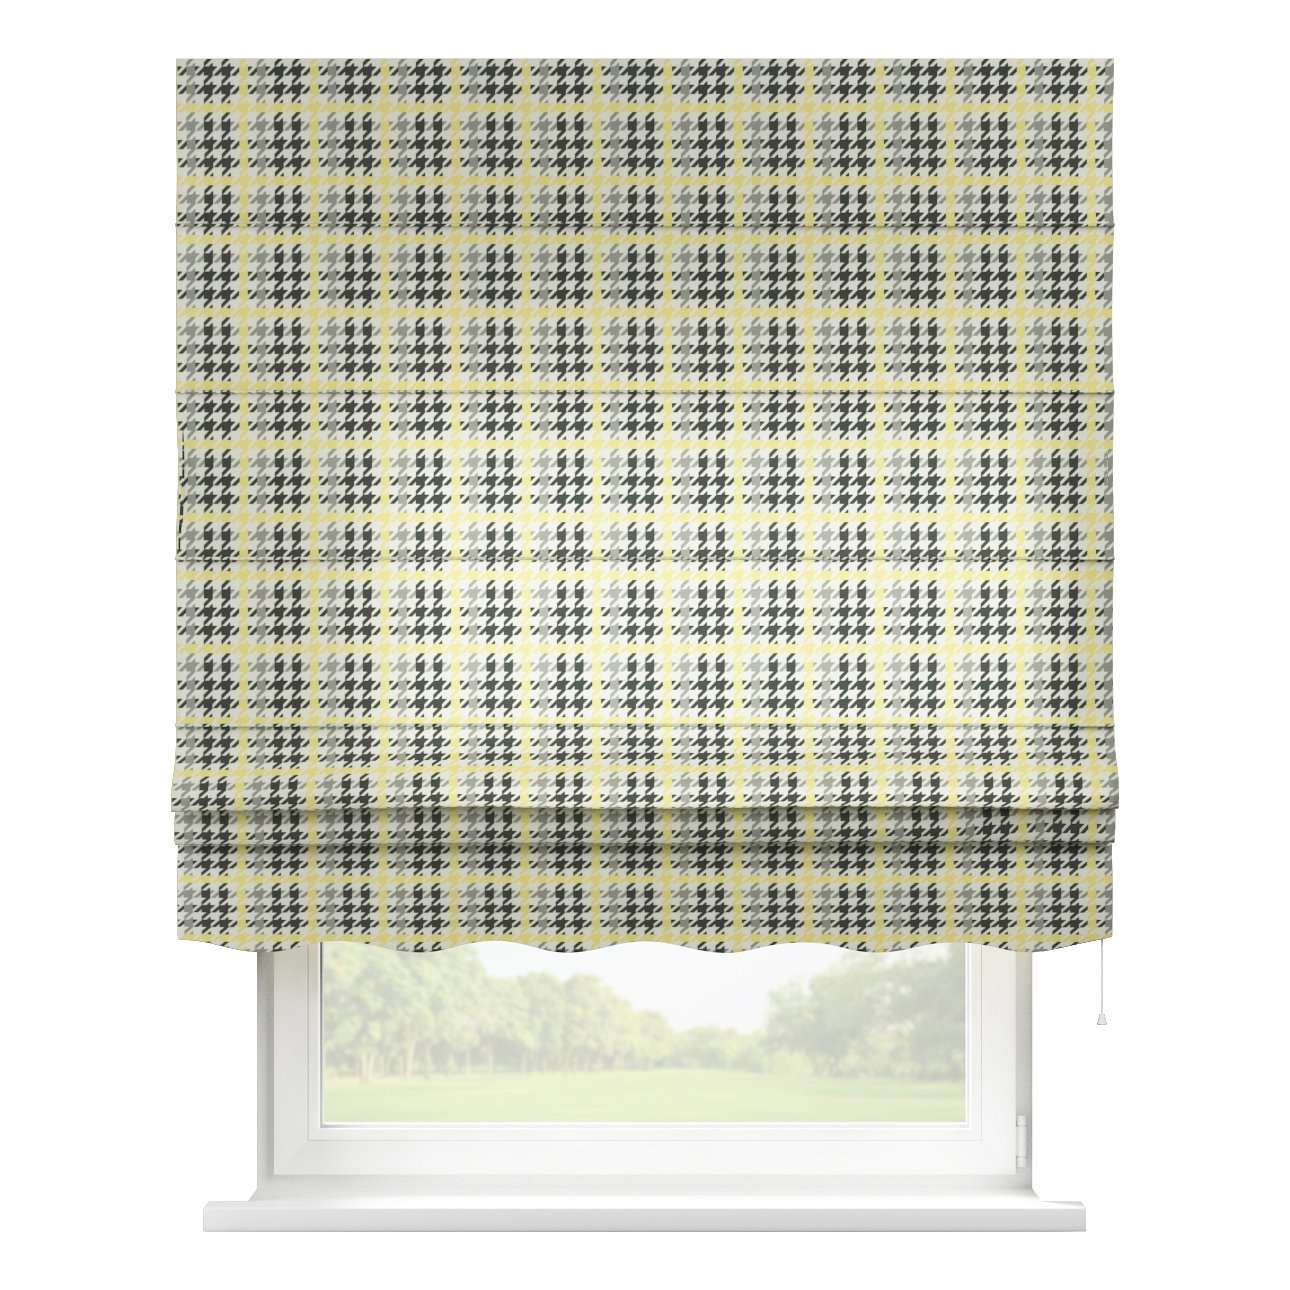 Florence roman blind  80 x 170 cm (31.5 x 67 inch) in collection Brooklyn, fabric: 137-79